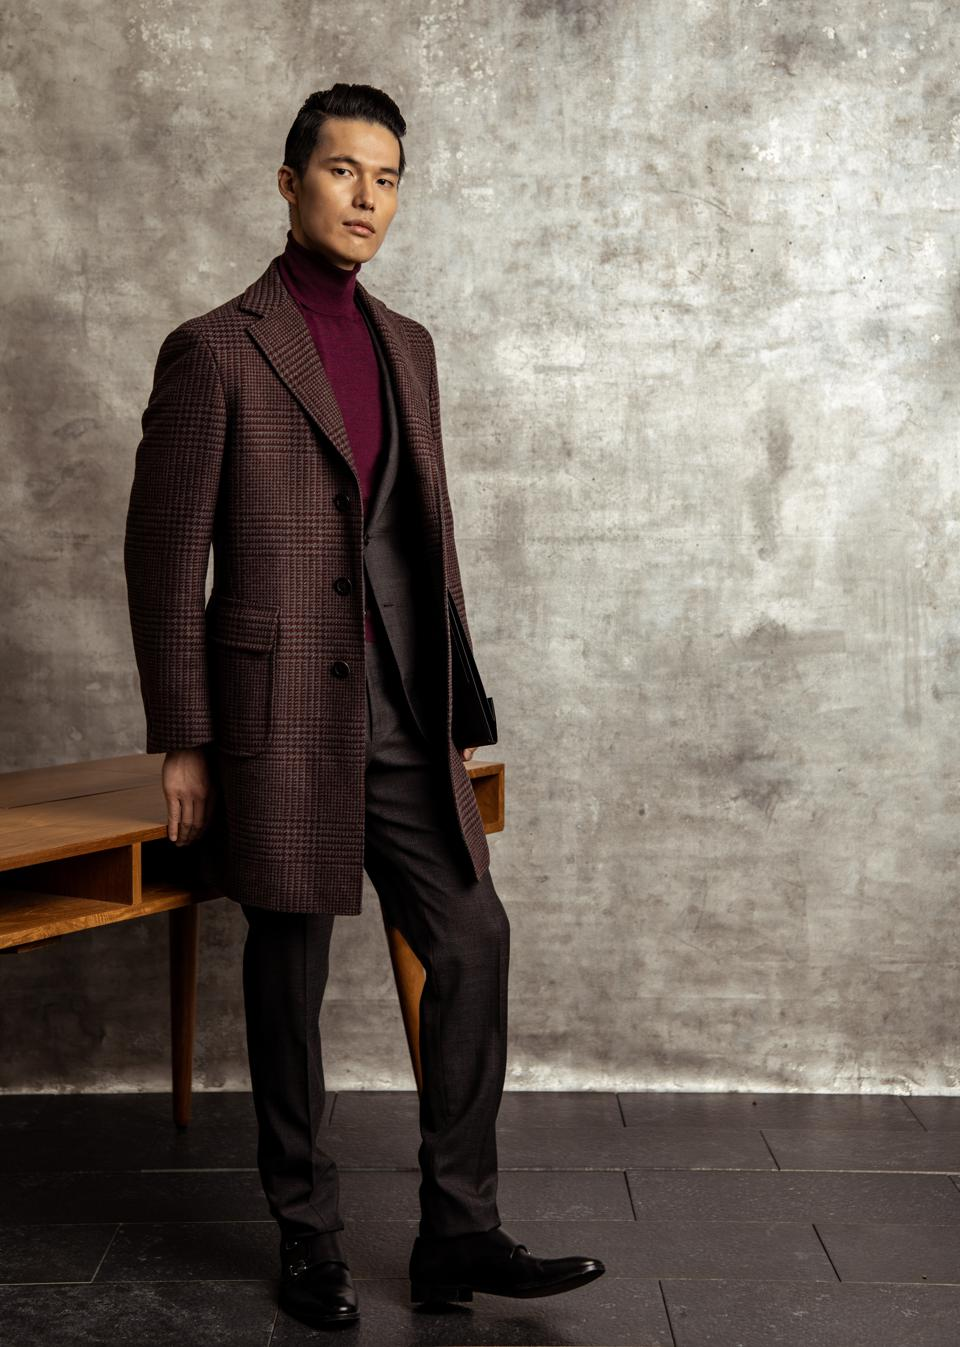 Canali   A single-breasted three-button Kei coat in pure double-faced wool with burgundy and gray Prince of Wales check warp and burgundy weft, notch lapel, flap pockets, and jetted breast pocket. Impeccable pure wool suit in gray and burgundy Prince of Wales check with single-breasted two button jacket with flap pockets, and half-moon breast pocket, and flat-front trousers with quarter-top pockets. This look from Canali elevates the everyday business look by combining classic corporate elements with contemporary details.  Price in USD :  Coat: $2,390.00 Full Suit: $1,690.00 Knit: $350.00  Brand URL/ Hyperlink : www.canali.com  Brand handle and relevant brand hashtags @canali1934